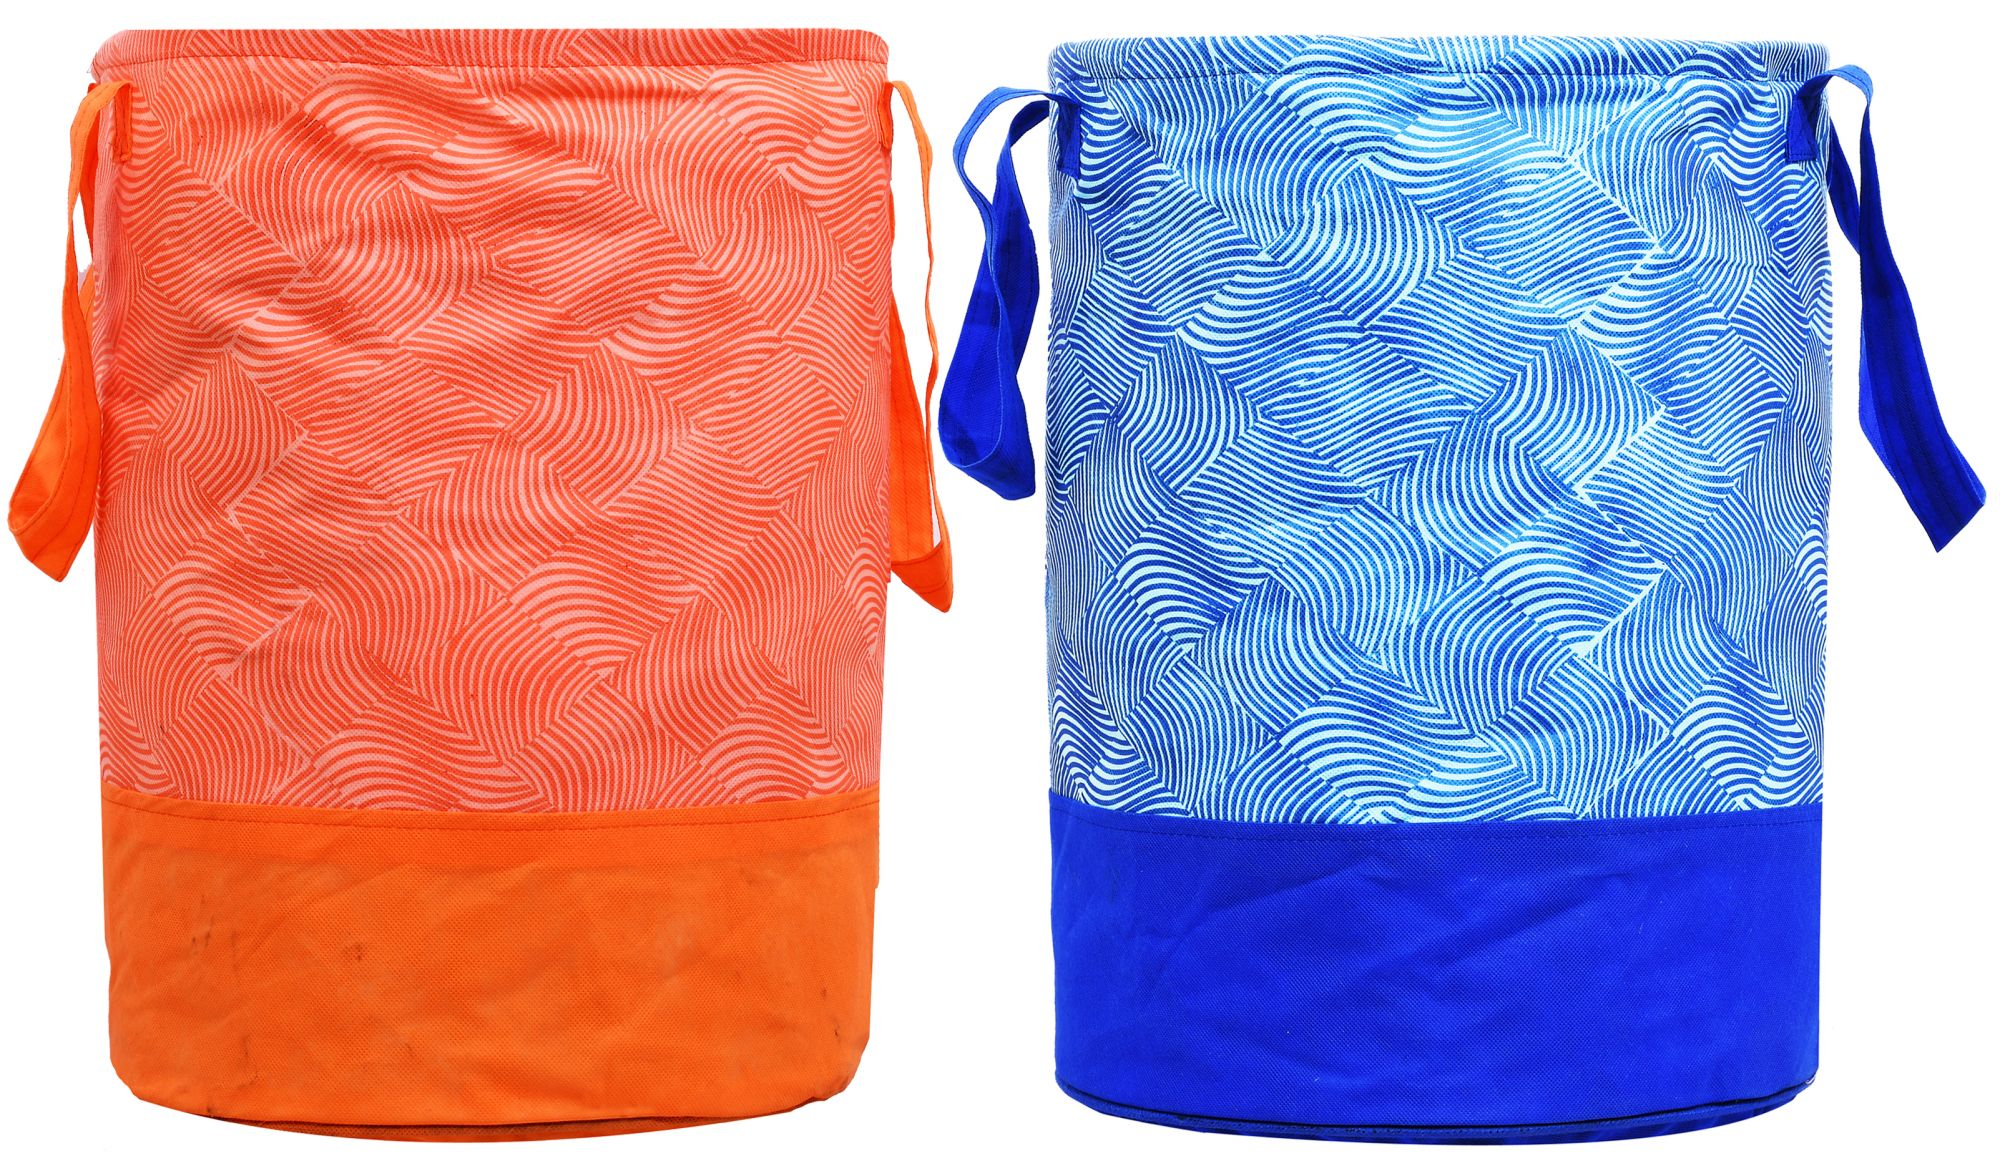 Kuber Industries Printed 2 Pieces Waterproof Canvas Laundry Bag,Toy Storage,Laundry Basket Organizer 45 L (Blue & Orange)